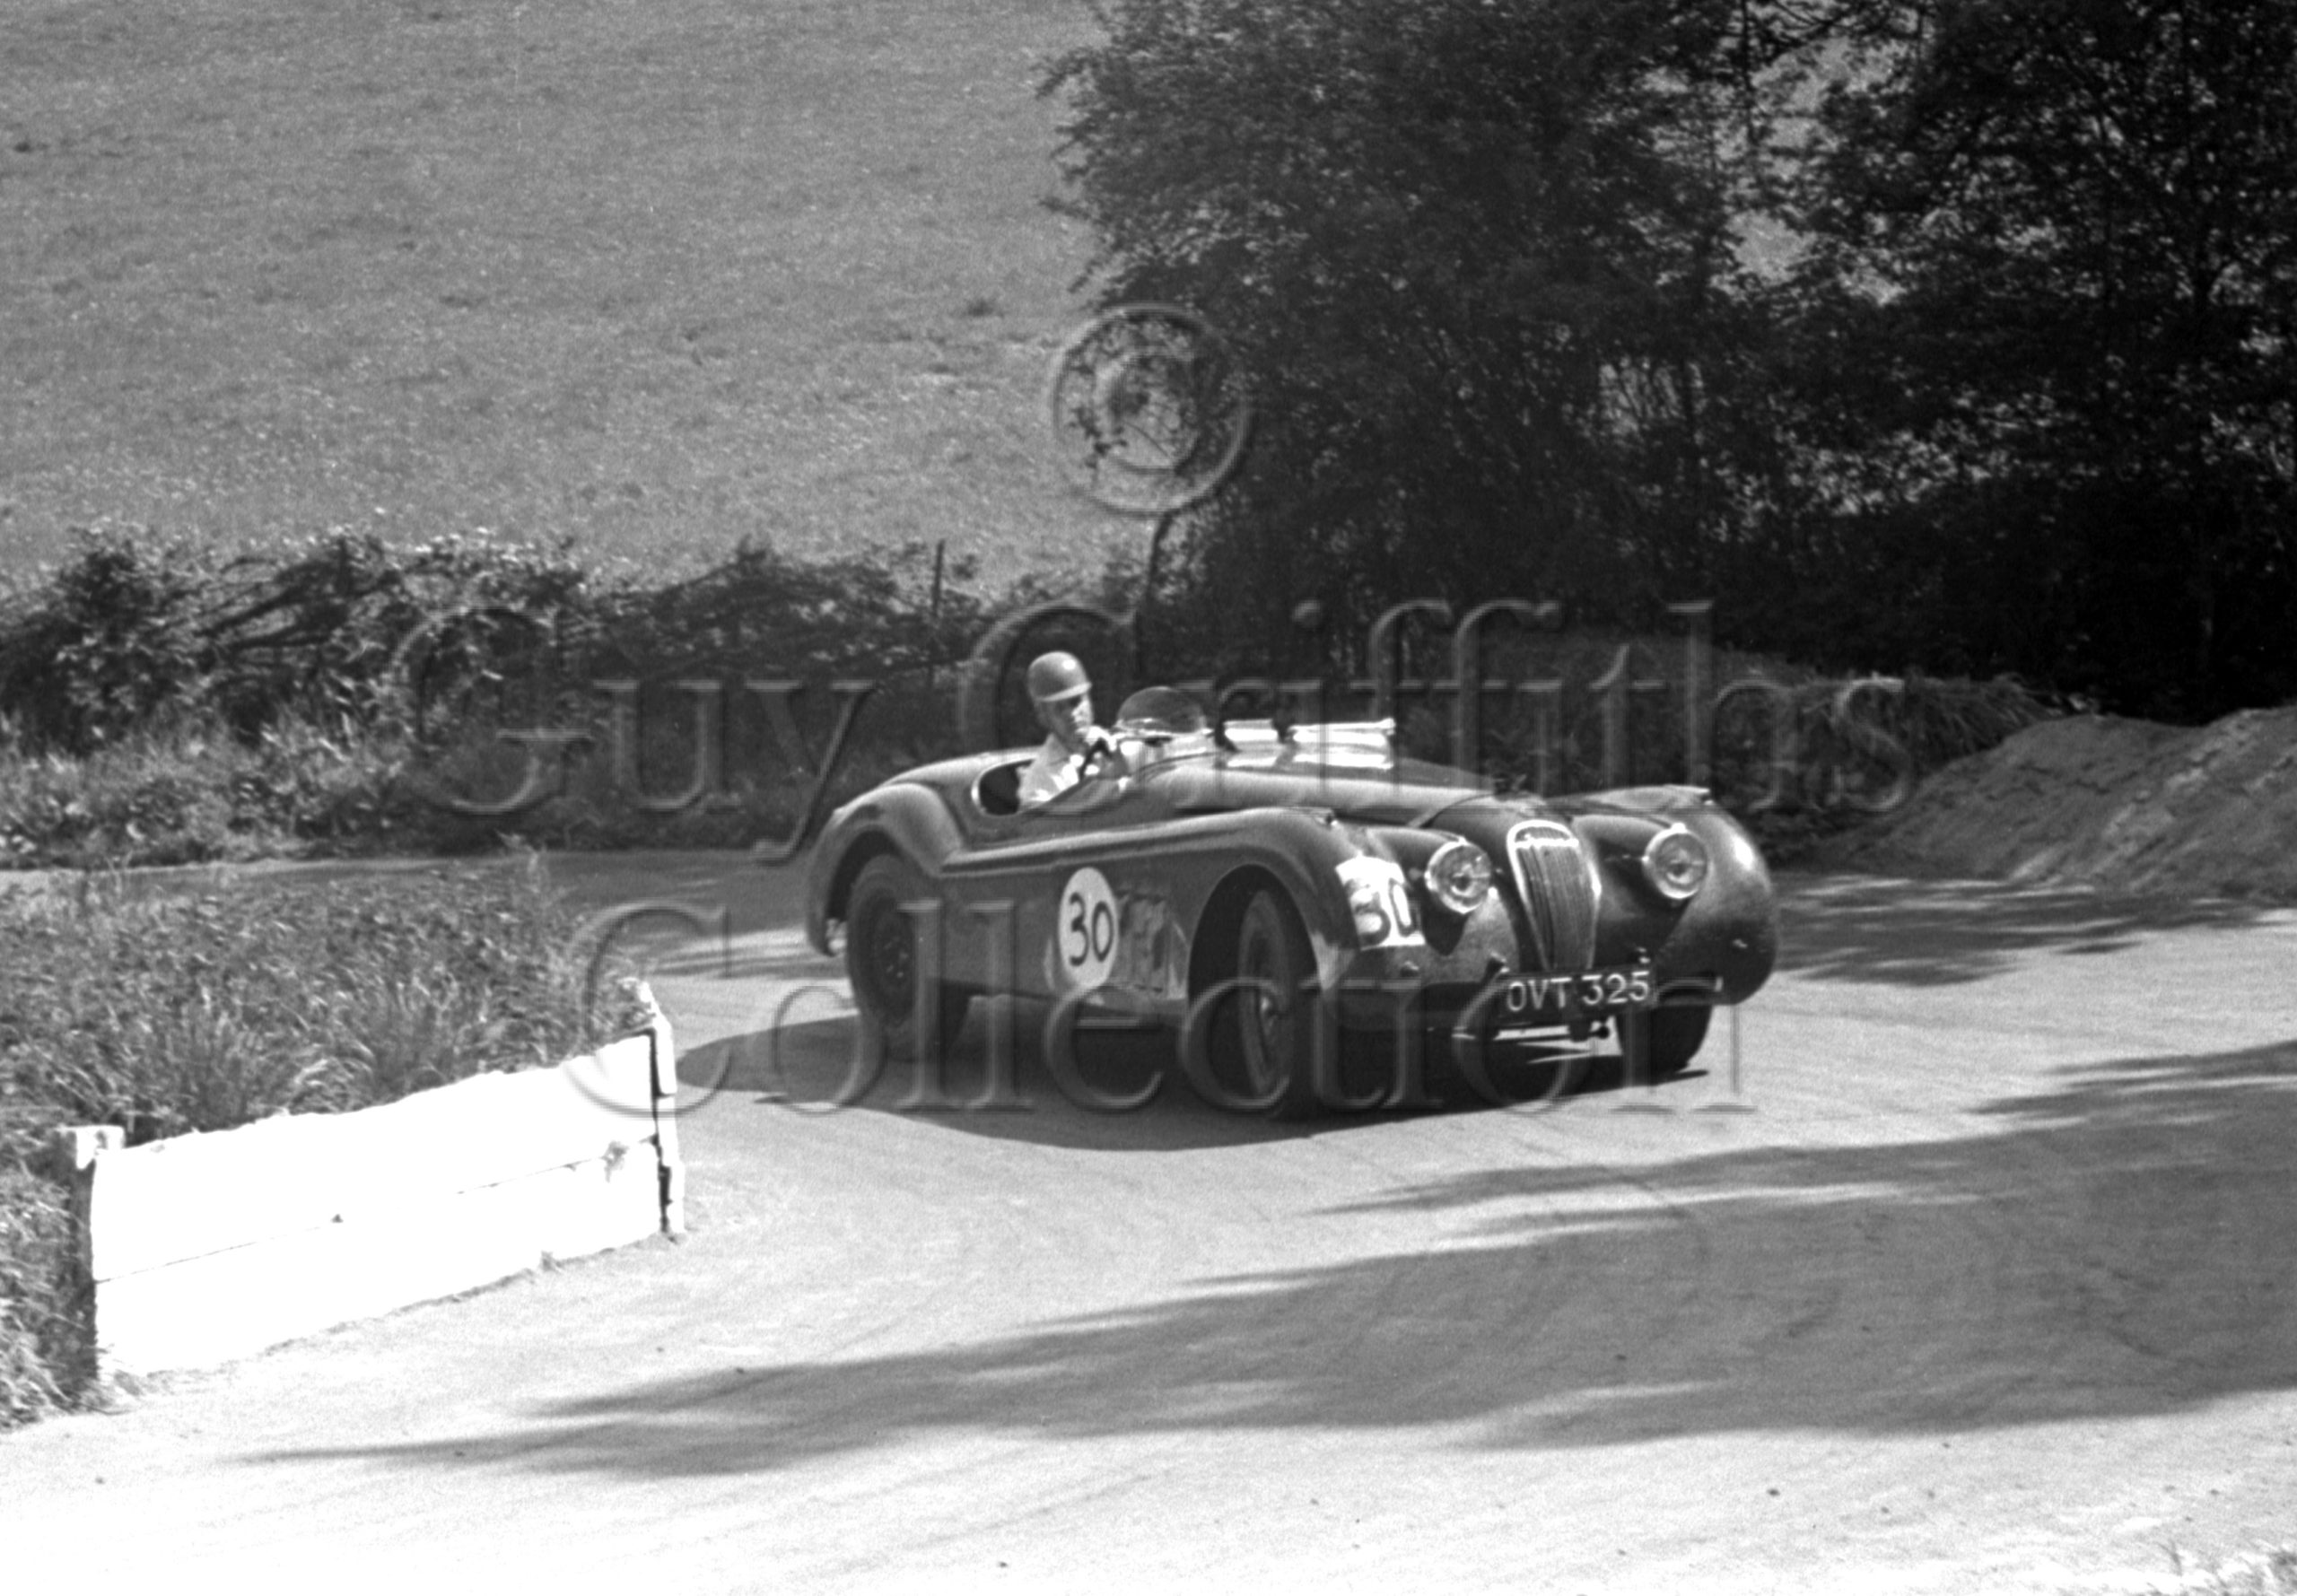 54-885–J-Swift–Jaguar-XK-120-OVT-325–Prescott–18-05-1952.jpg - Guy Griffiths Collection